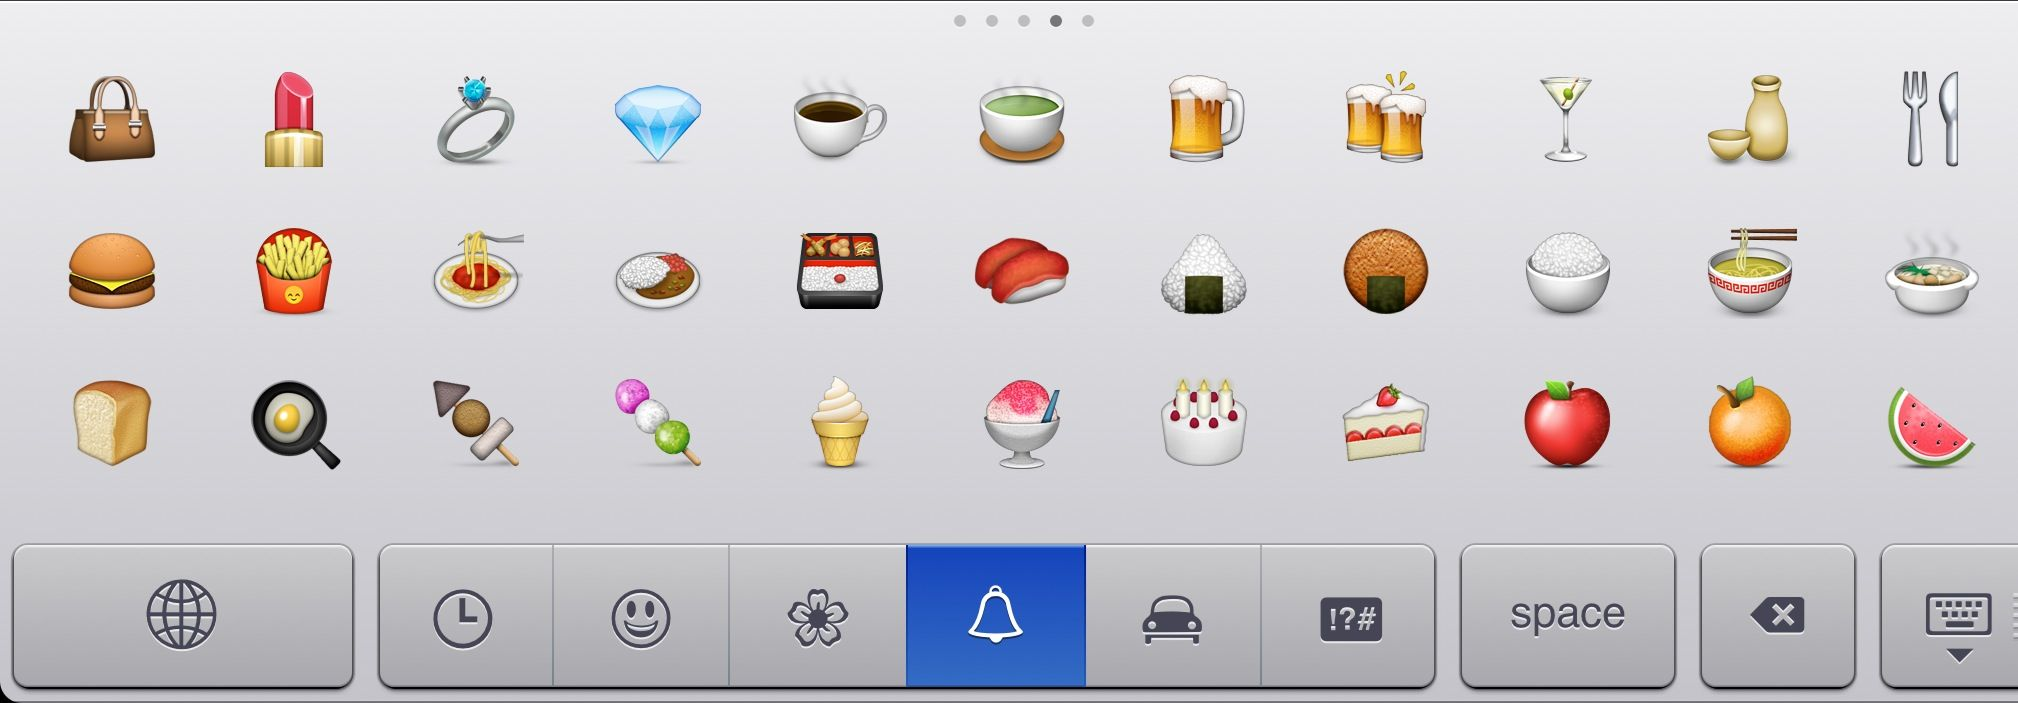 Emoticons on your ipad keyboard how to access a whole bunch of if biocorpaavc Images